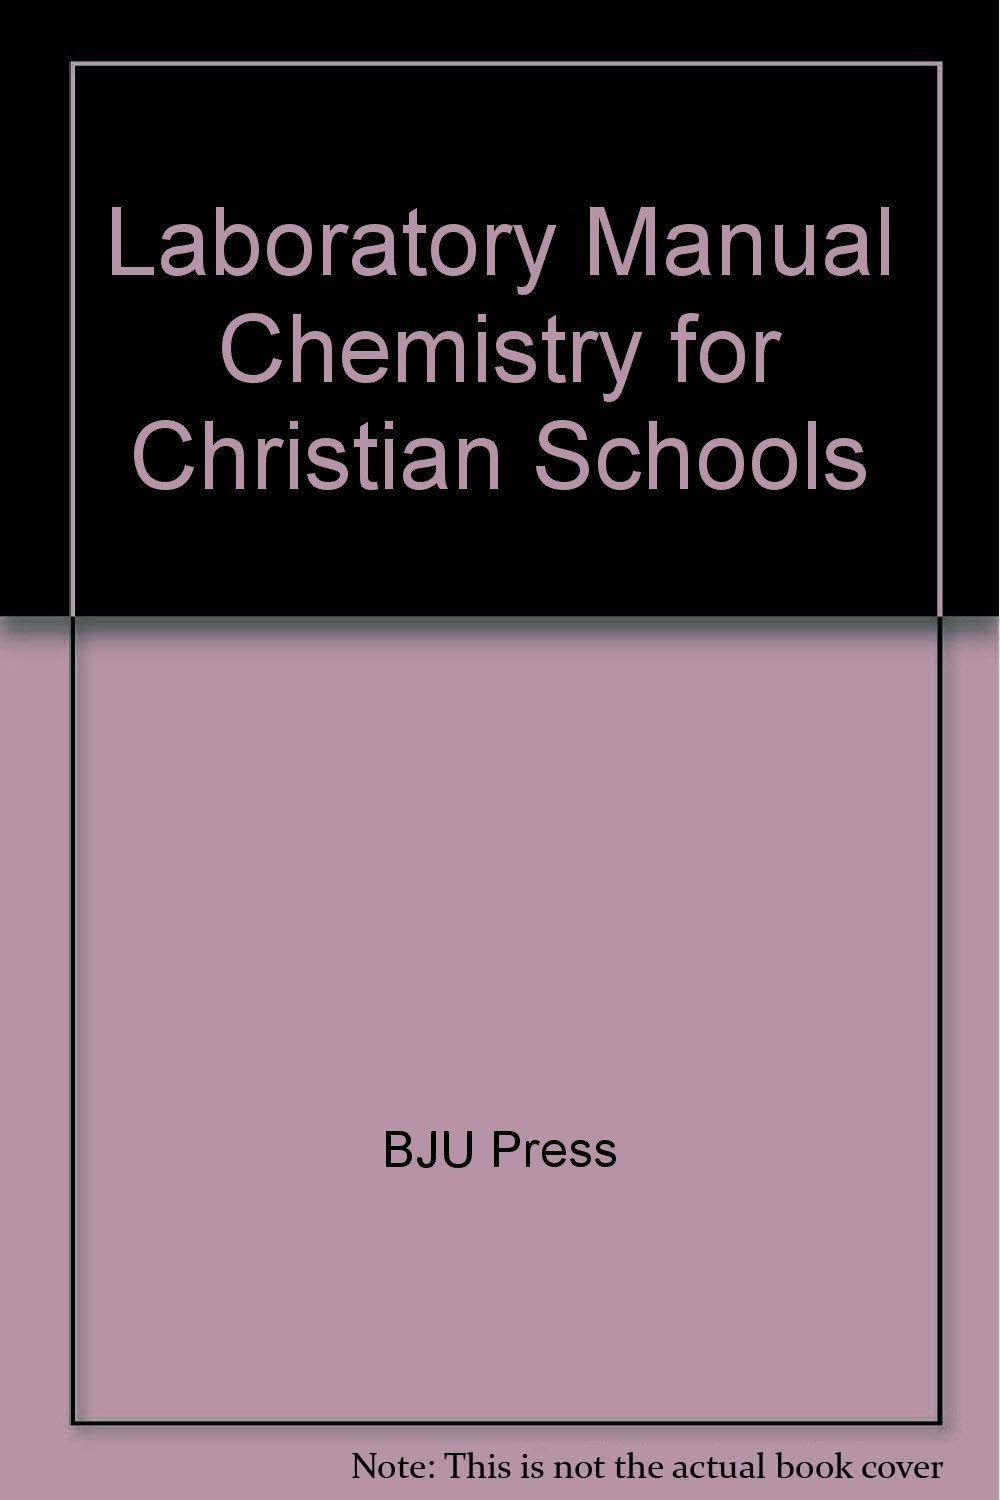 Amazon.com: Laboratory Manual Chemistry for Christian Schools  (9781579244491): Verne Biddle, Candace M. Jamison, Richard Seeley, Heather  E. Cox: Books